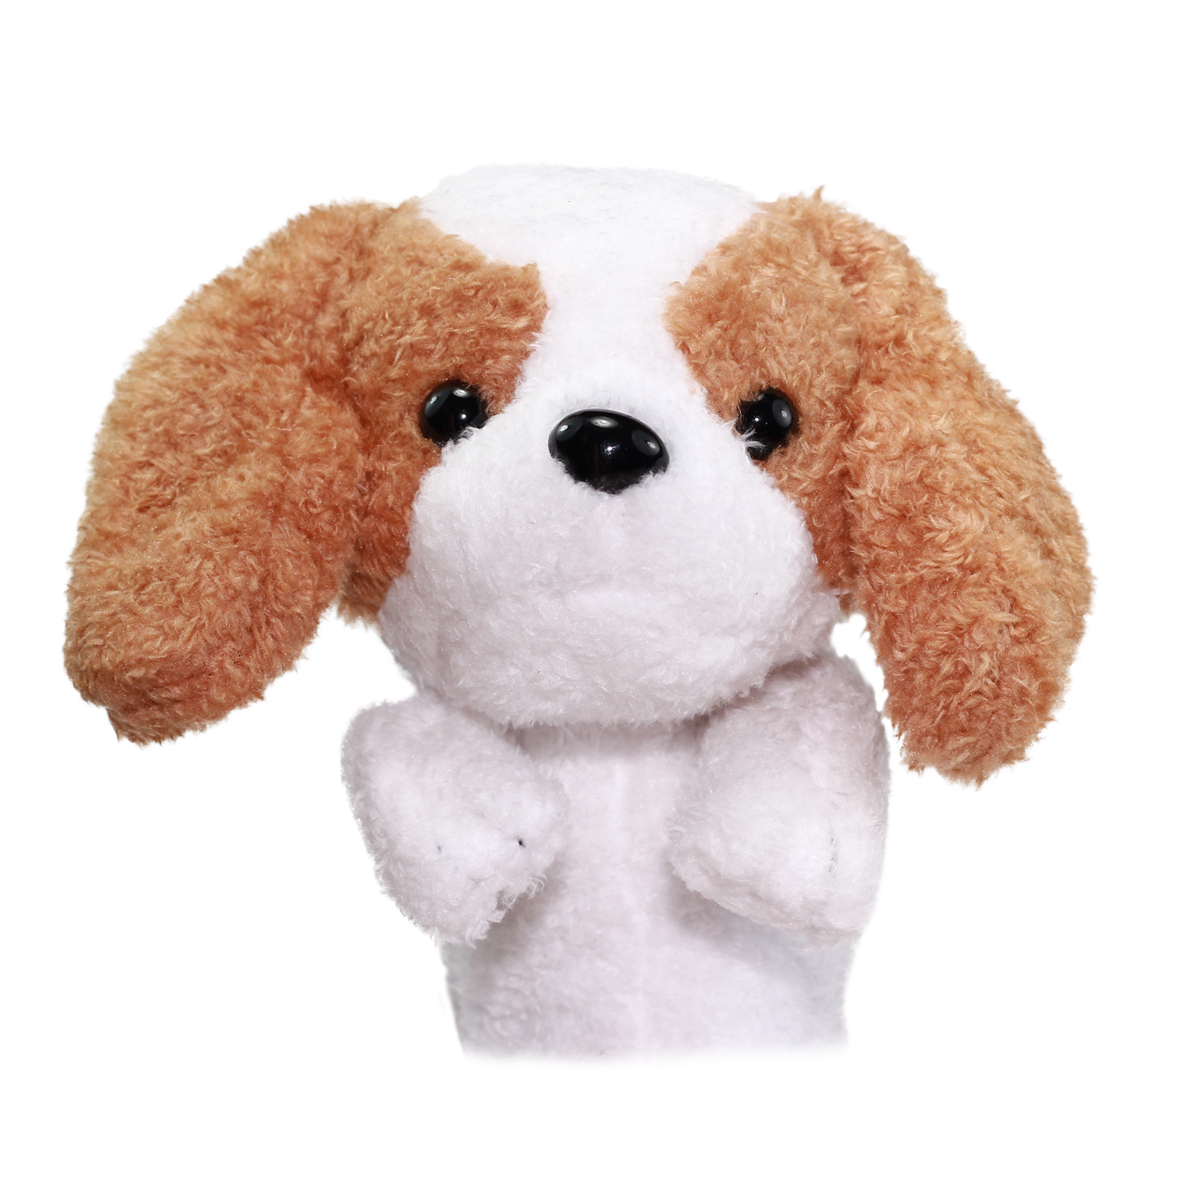 Dog Pencil Case Pouch Stuffed Animal Back To School Collection Fluffy Brown Spaniel Plush 10 Inches